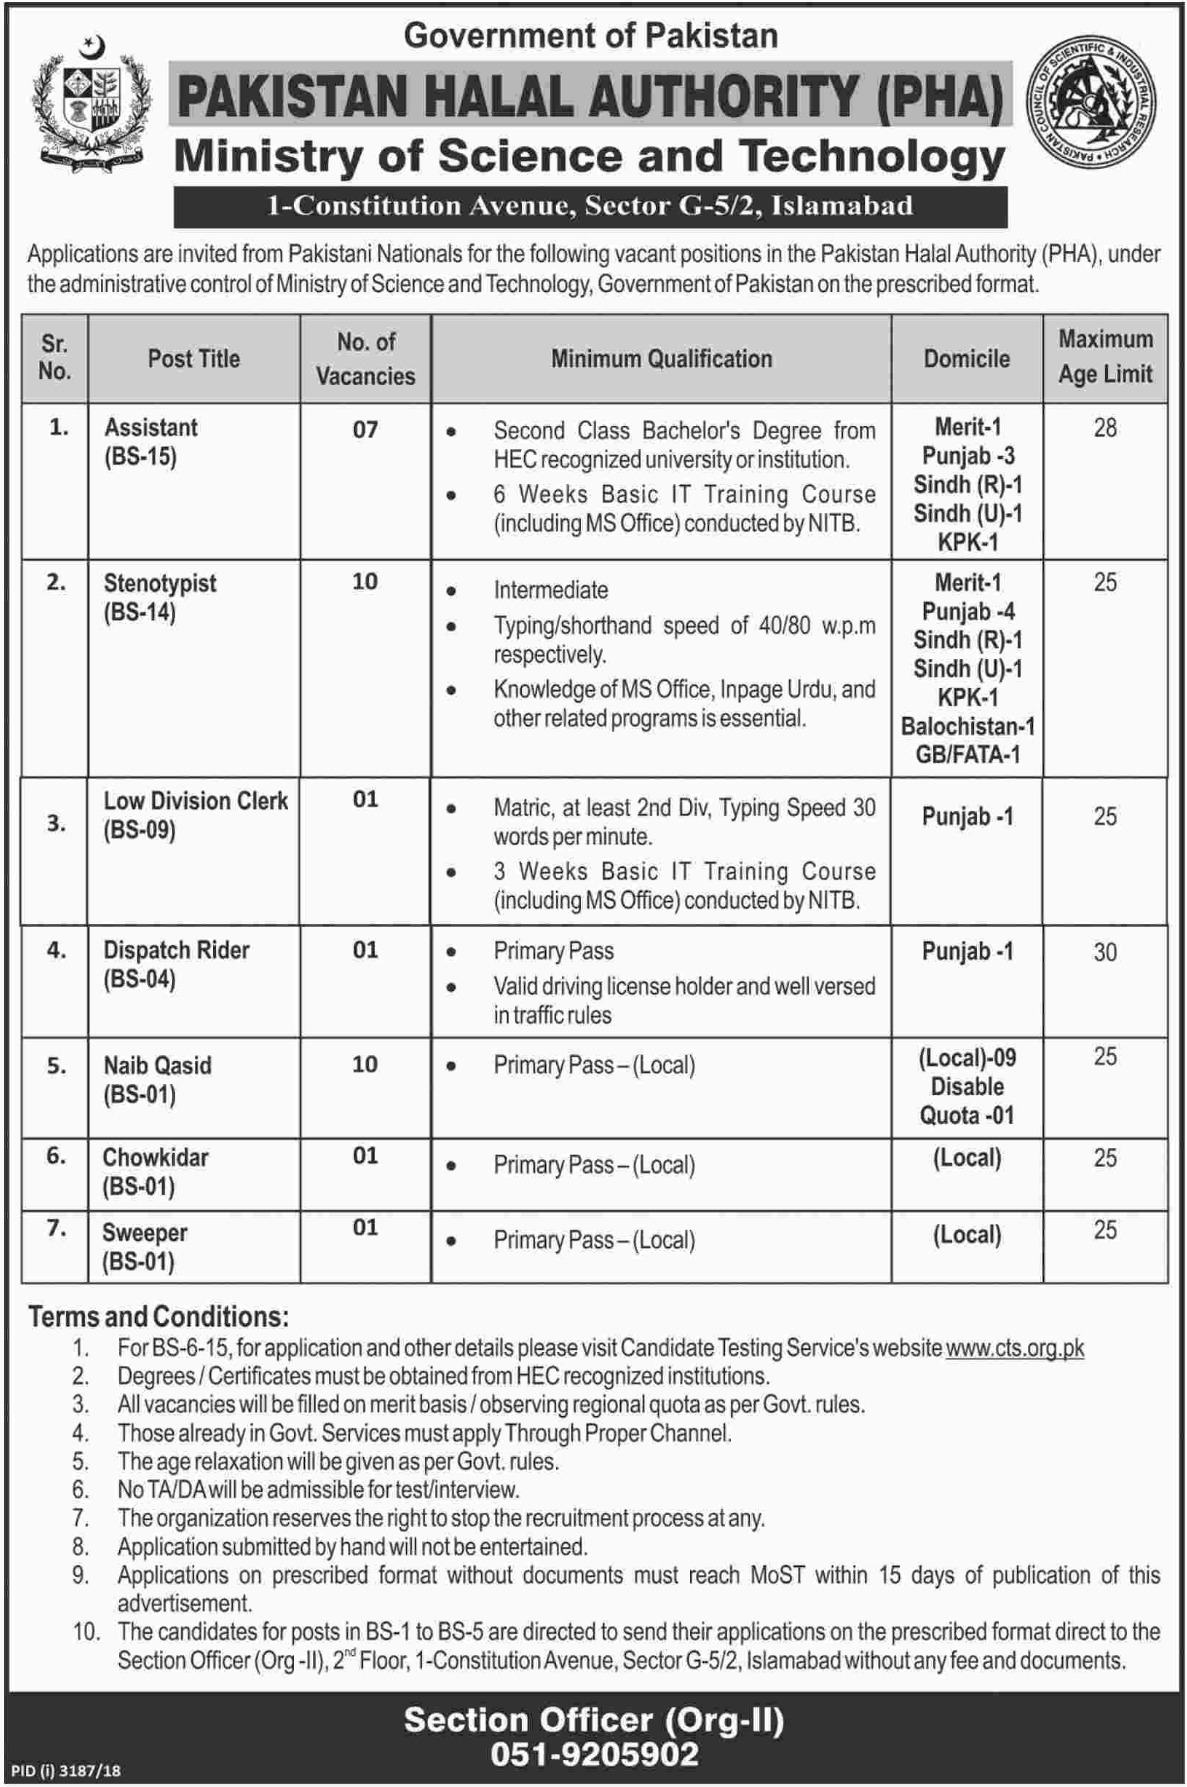 Pakistan Halal Authority Jobs 2019 Ministry of Science & Technology